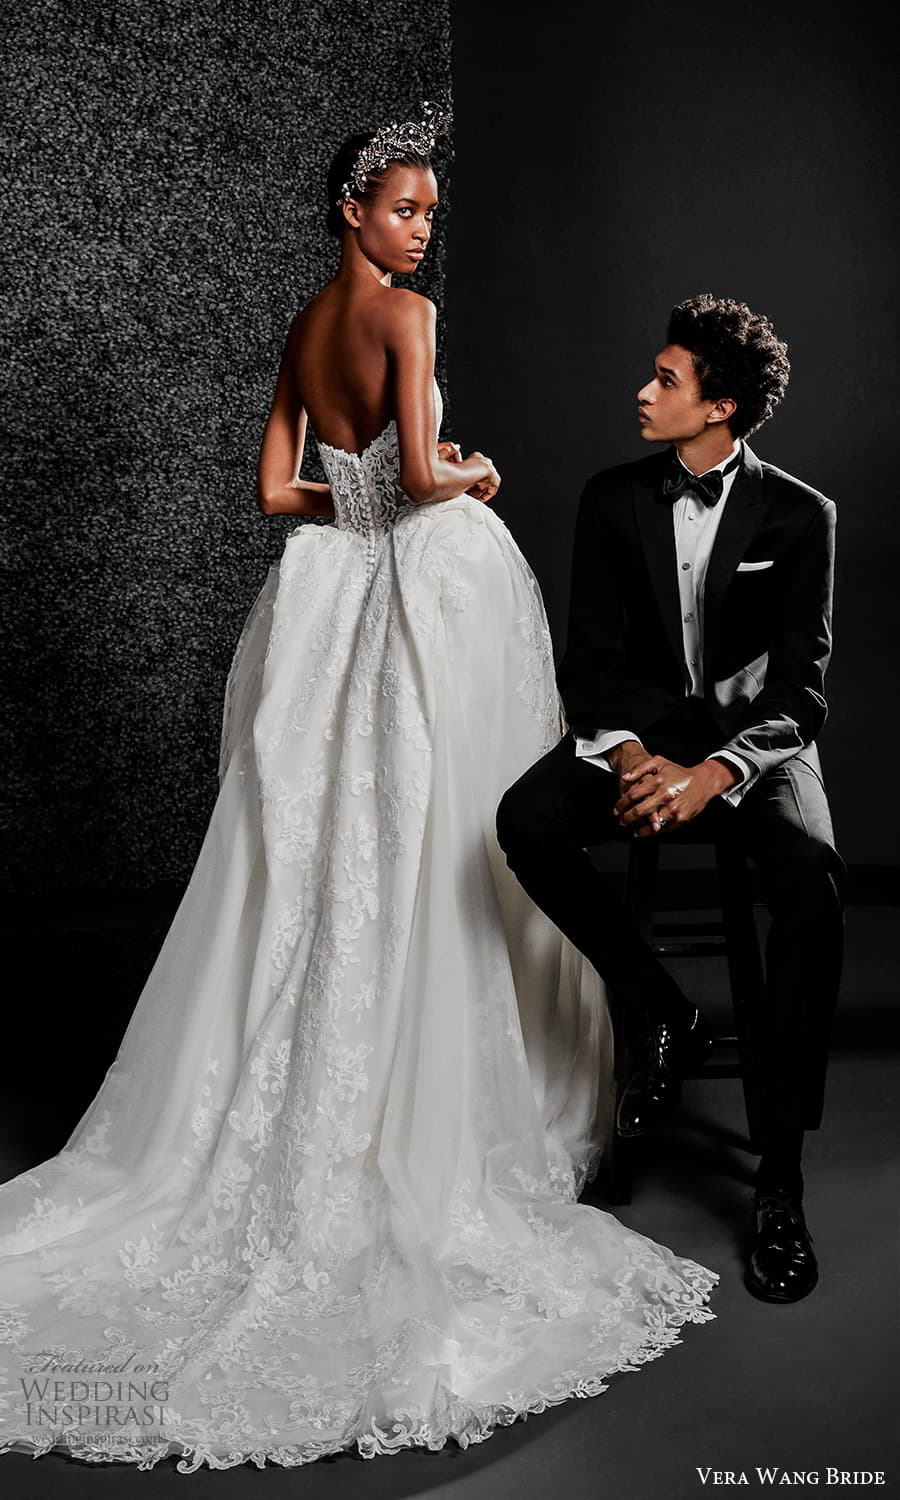 vera wang bride pronovias fall 2021 bridal strapless straight across neckline fully embellished lace a line ball gown wedding dress chapel train (5) bv